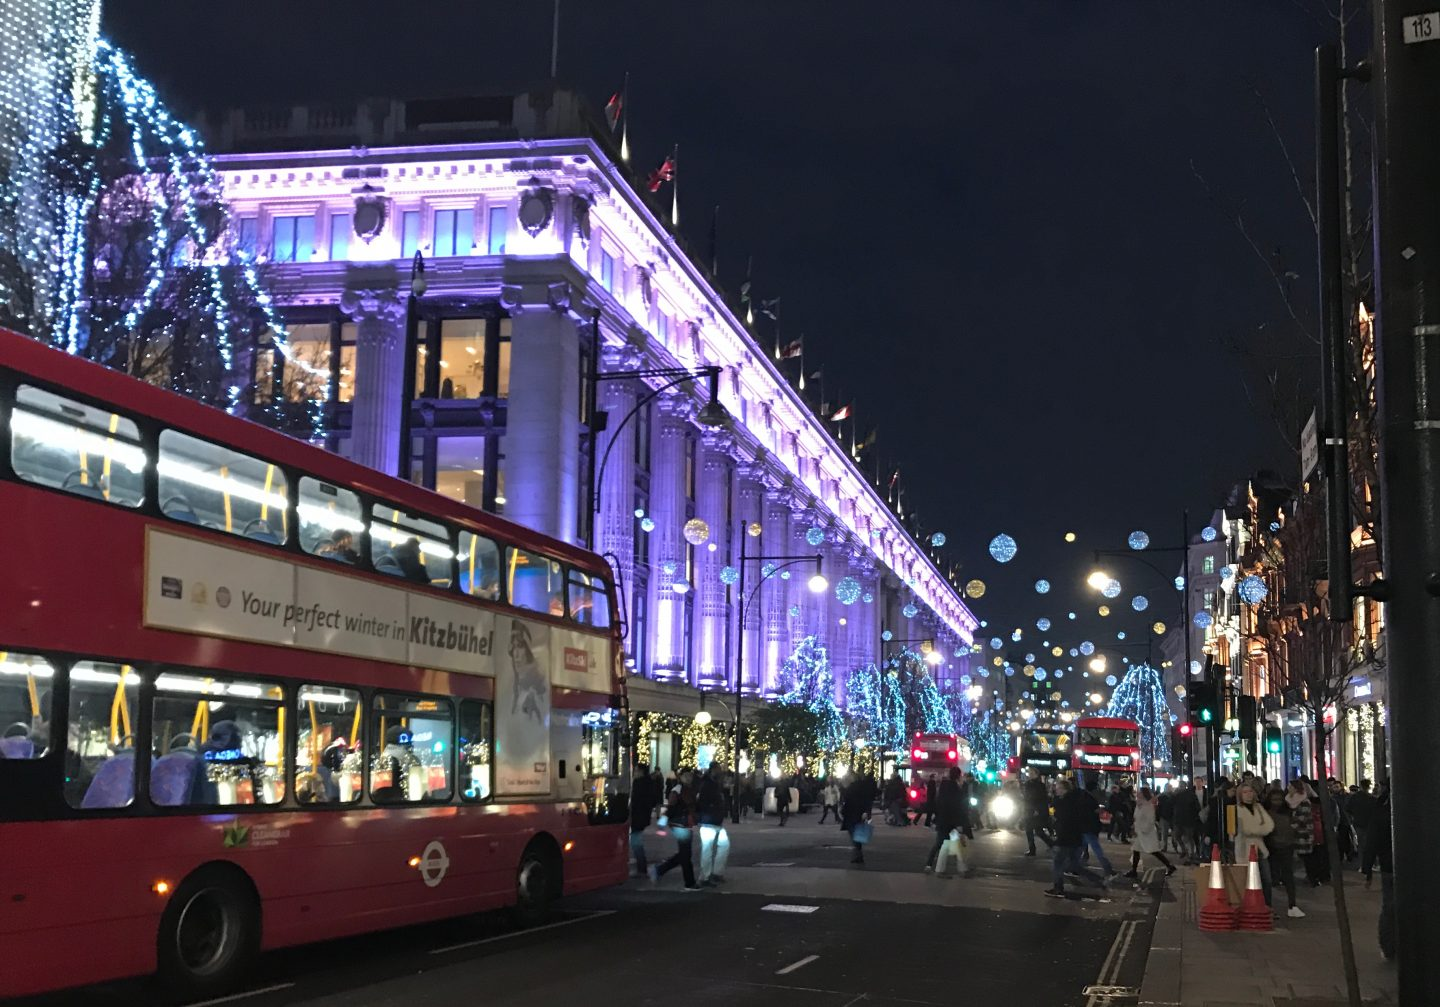 Oxford Street Selfridges